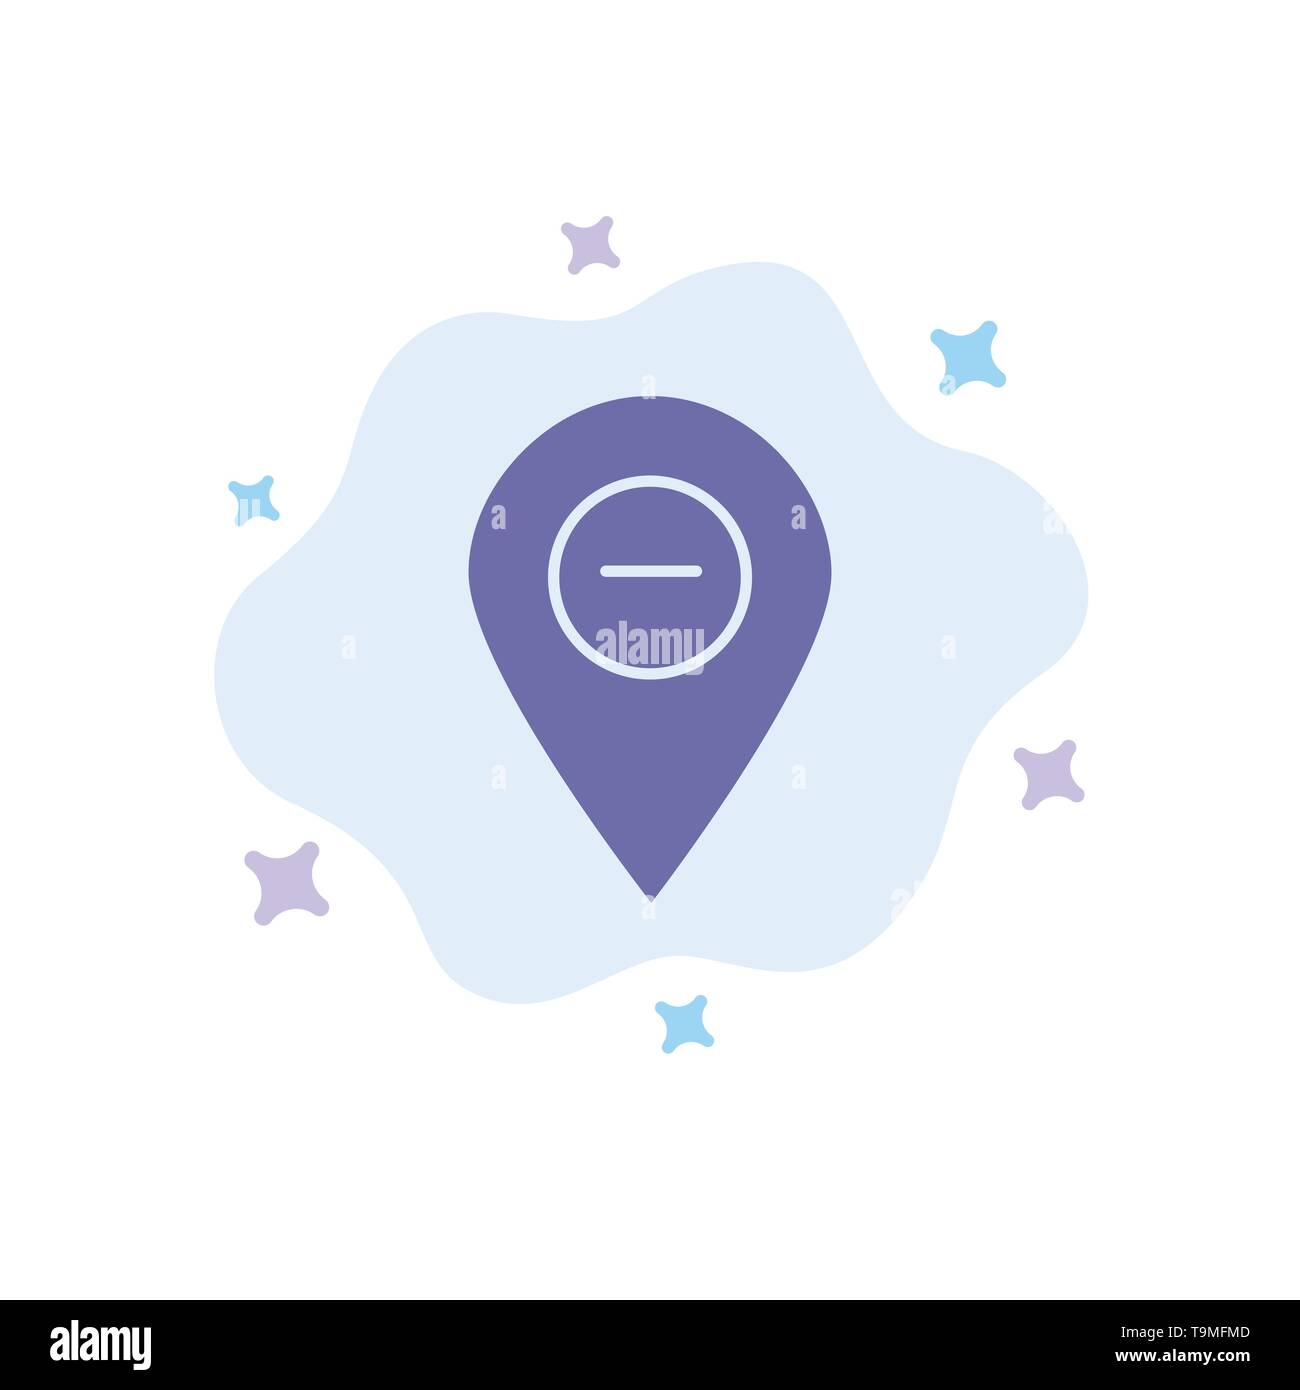 Location, Map, Marker, Pin Blue Icon on Abstract Cloud Background - Stock Image